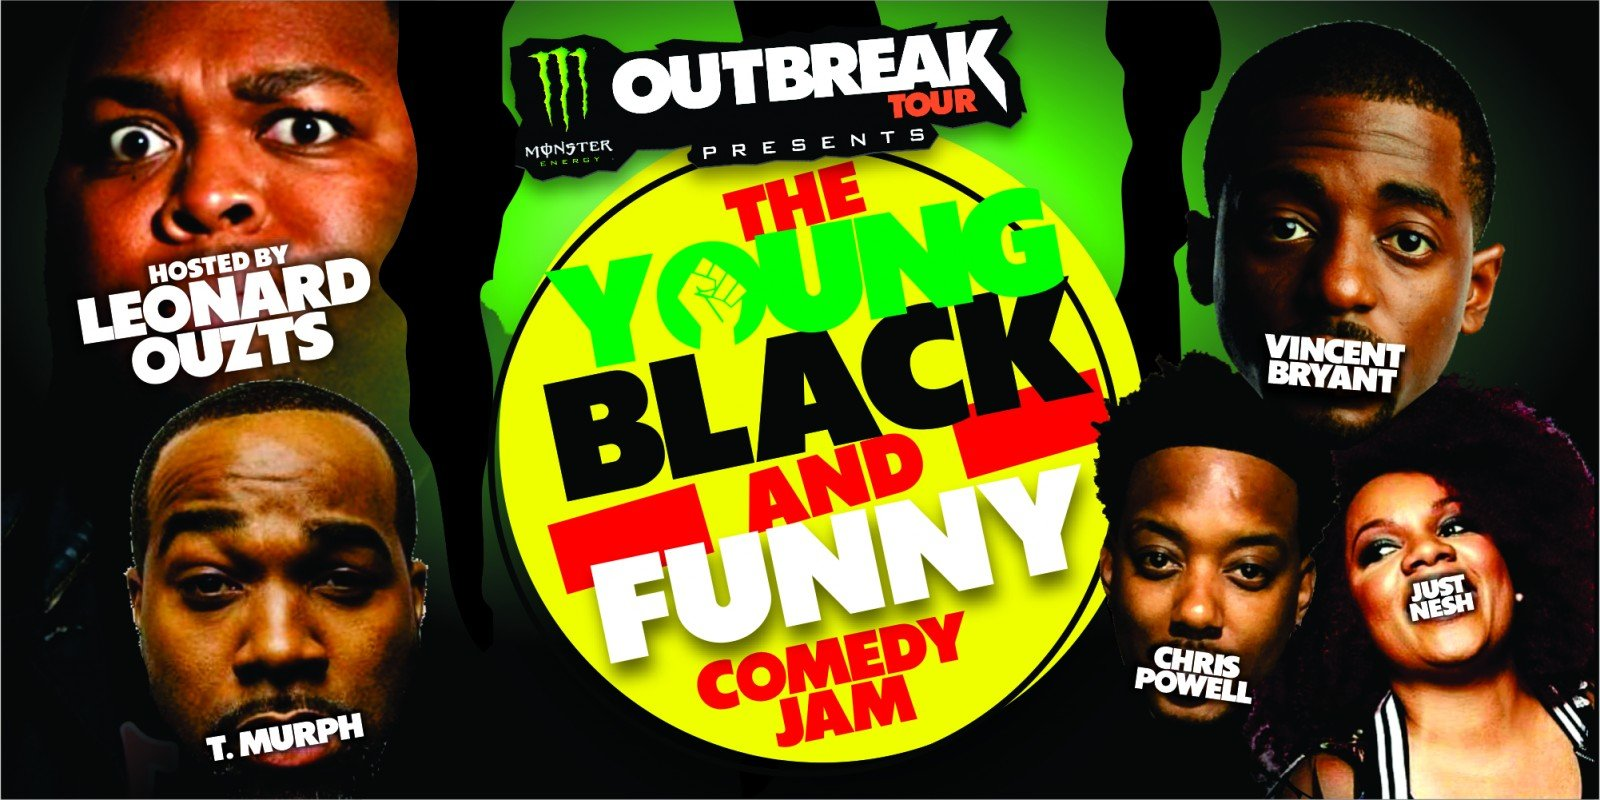 The Monster Energy Outbreak Tour Presents The Young Black and Funny Comedy Jam